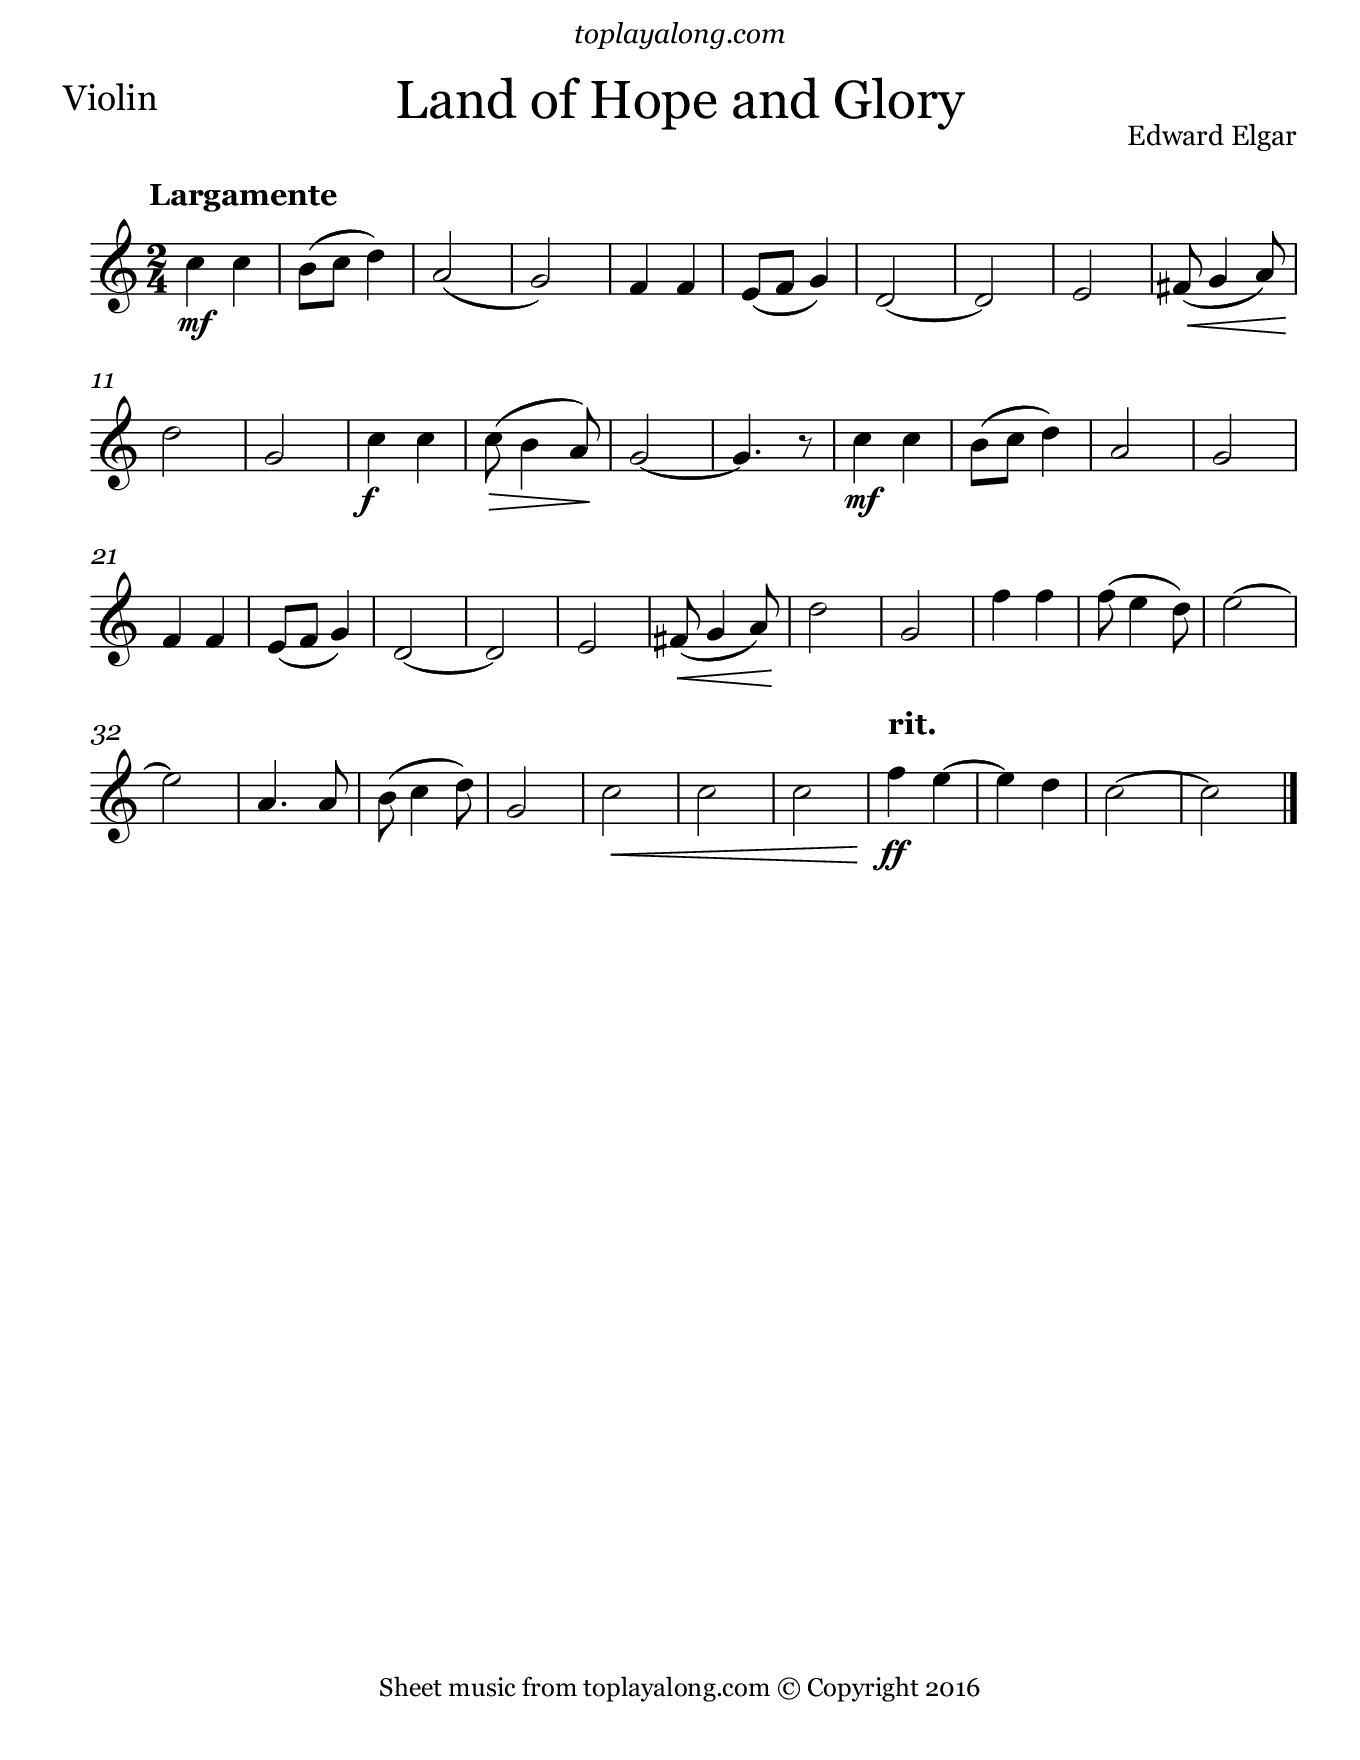 Land of Hope and Glory by Elgar. Sheet music for Violin, page 1.